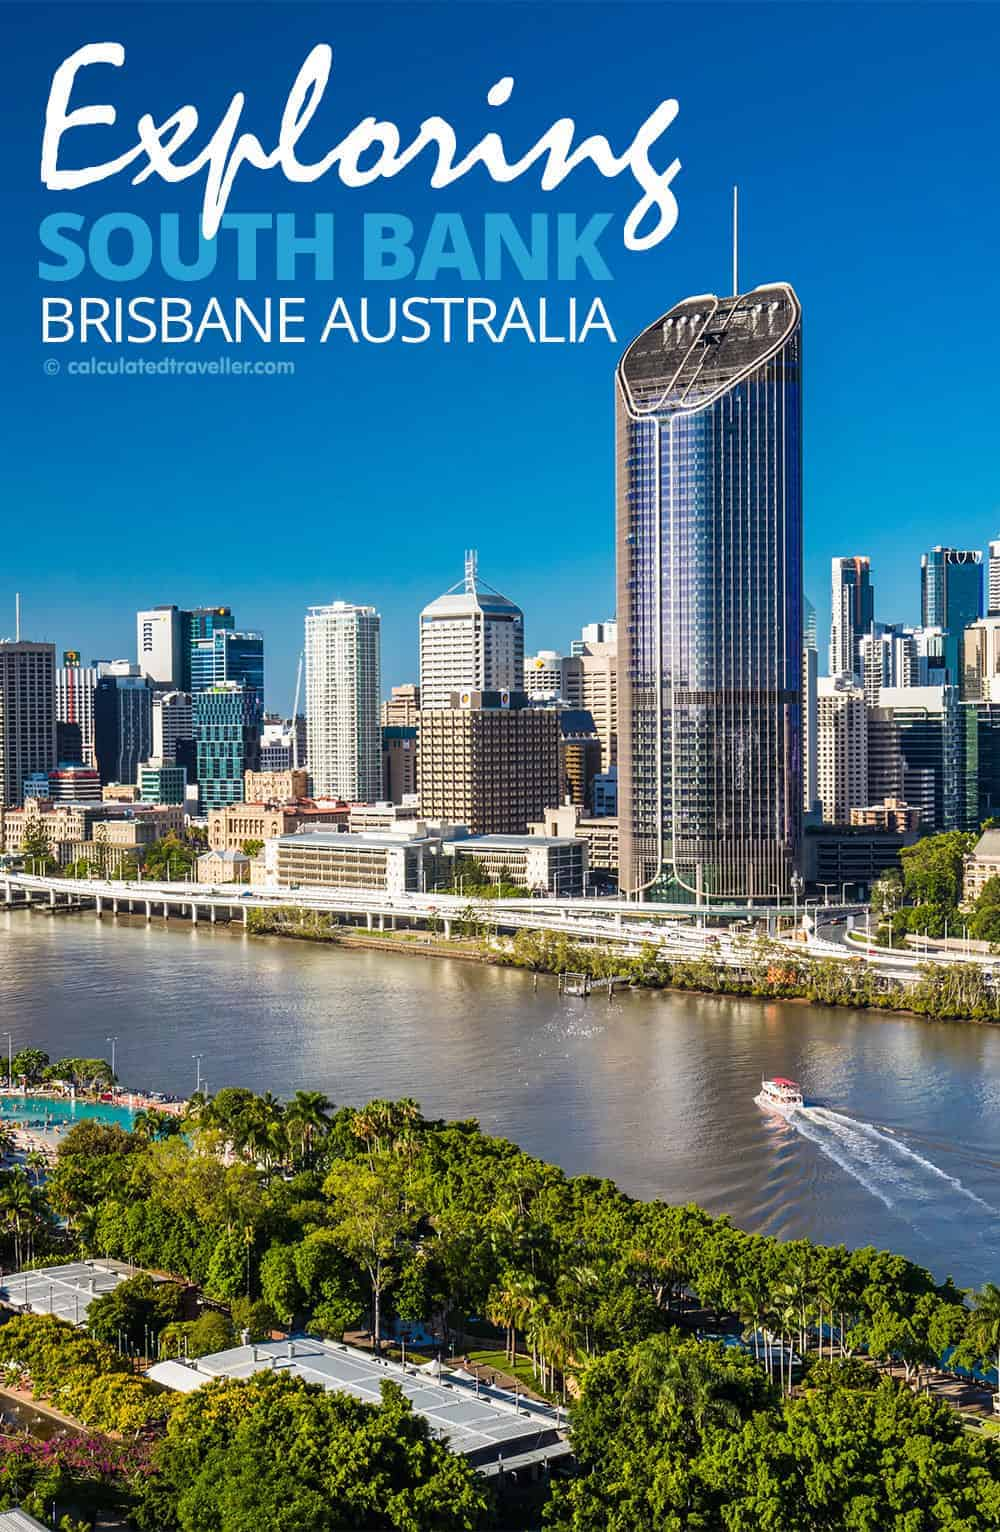 Exploring Brisbane's South Bank by Calculated Traveller   TRAVEL   FAMILY TRAVEL   BRISBANE   AUSTRALIA   SOUTH BANK   THINGS TO DO   WHAT TO SEE